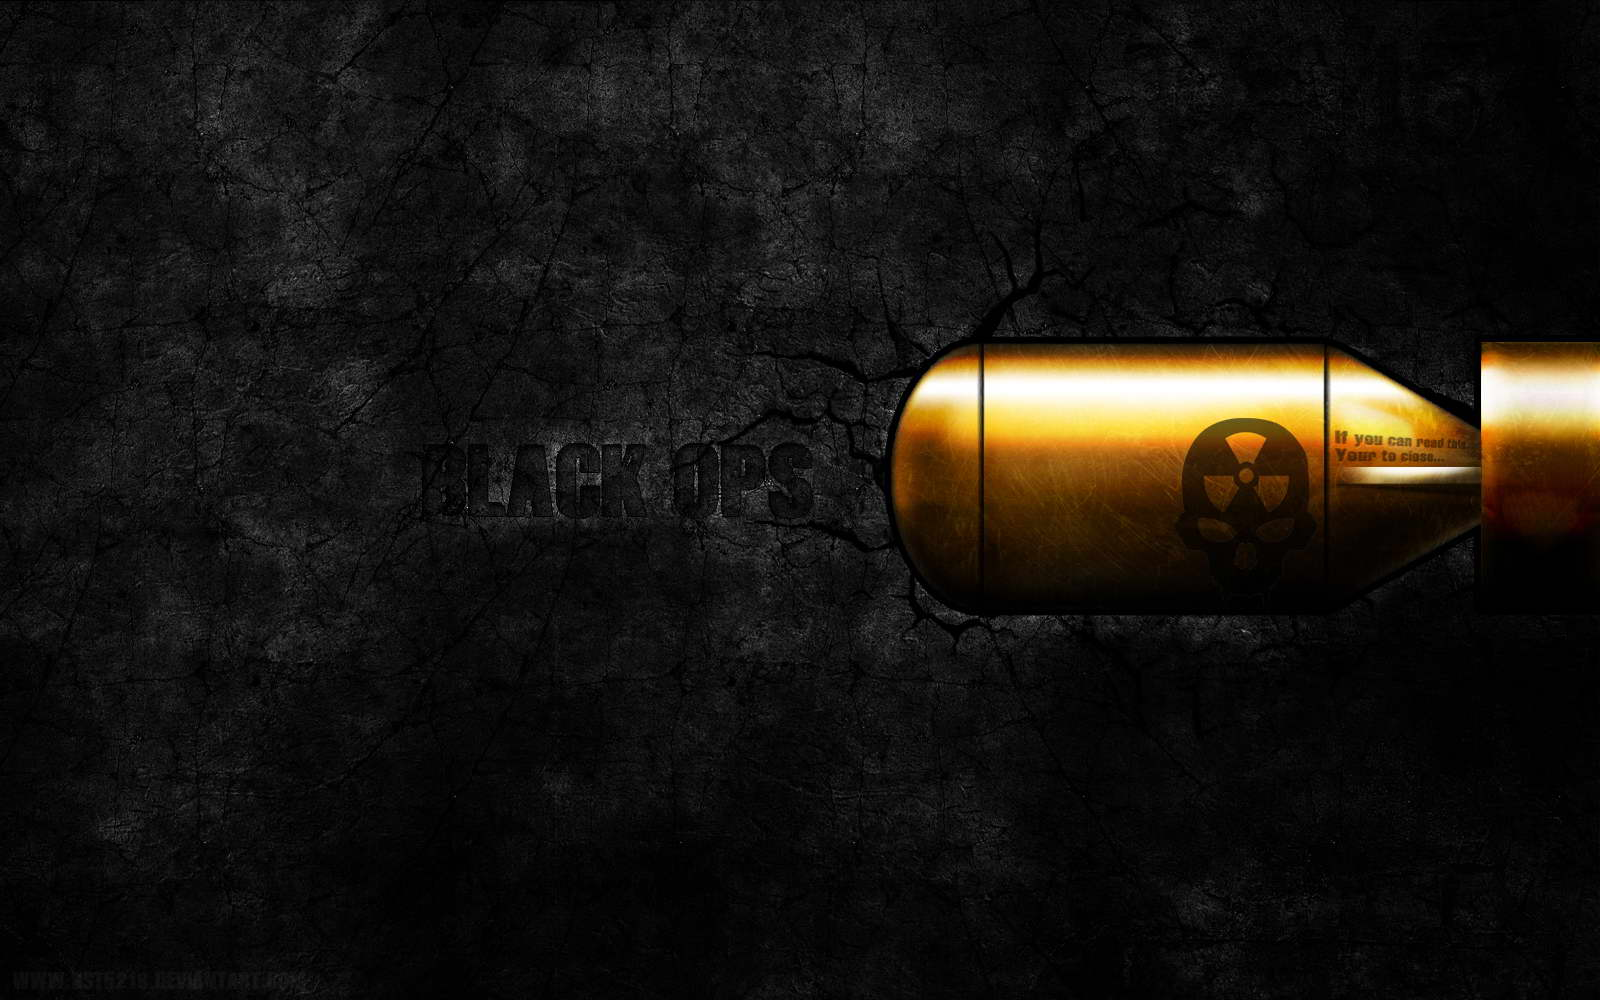 HD WALLPAPERS Call of Duty Black ops 2 HD Wallpapers 1600x1000